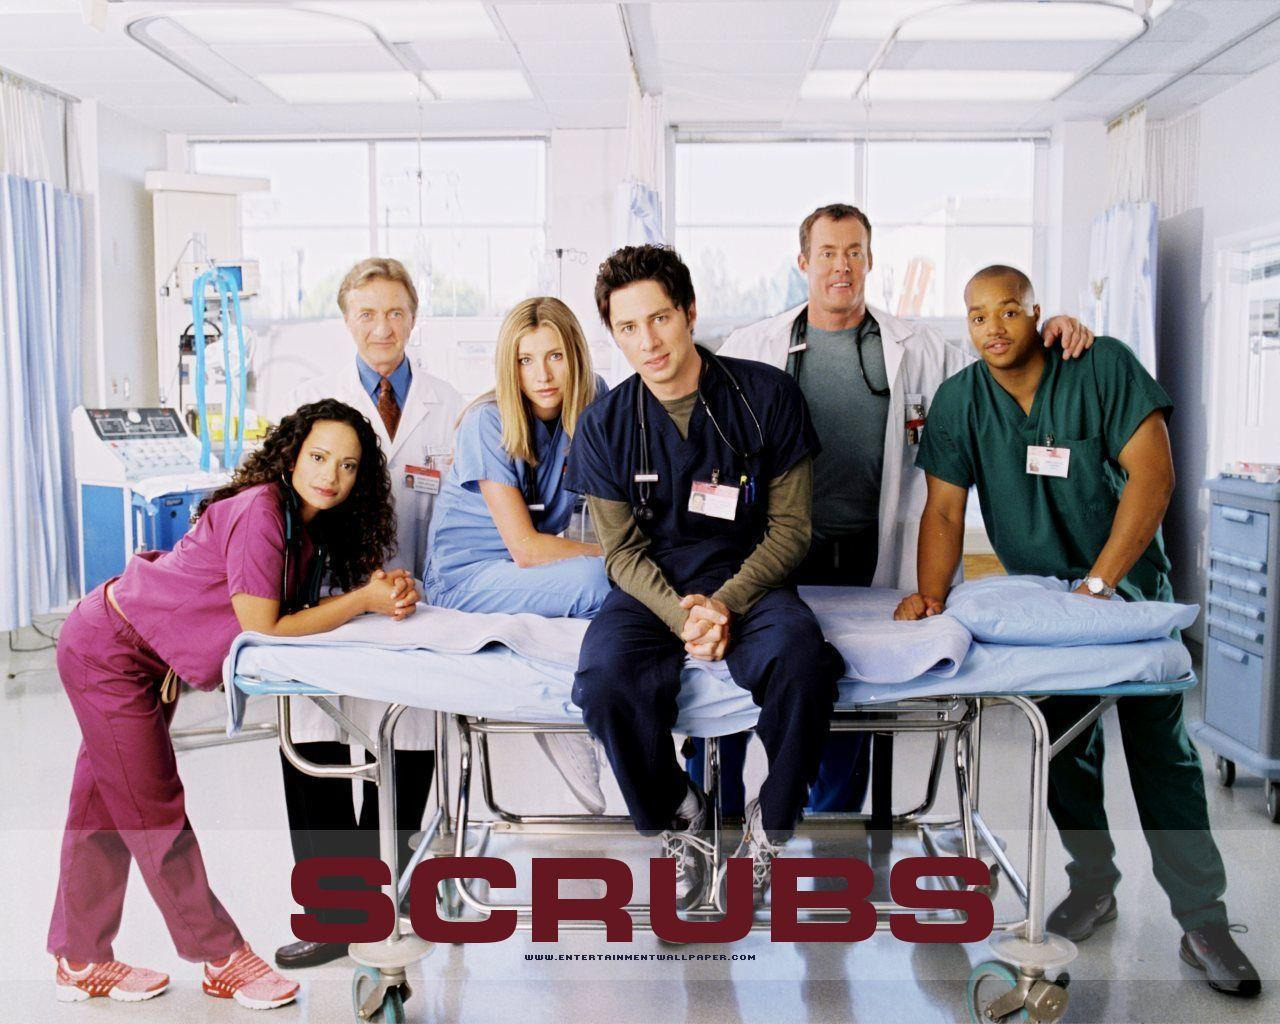 Incredible HDQ Cover Wallpaper's Collection: Scrubs Wallpapers (33 ...